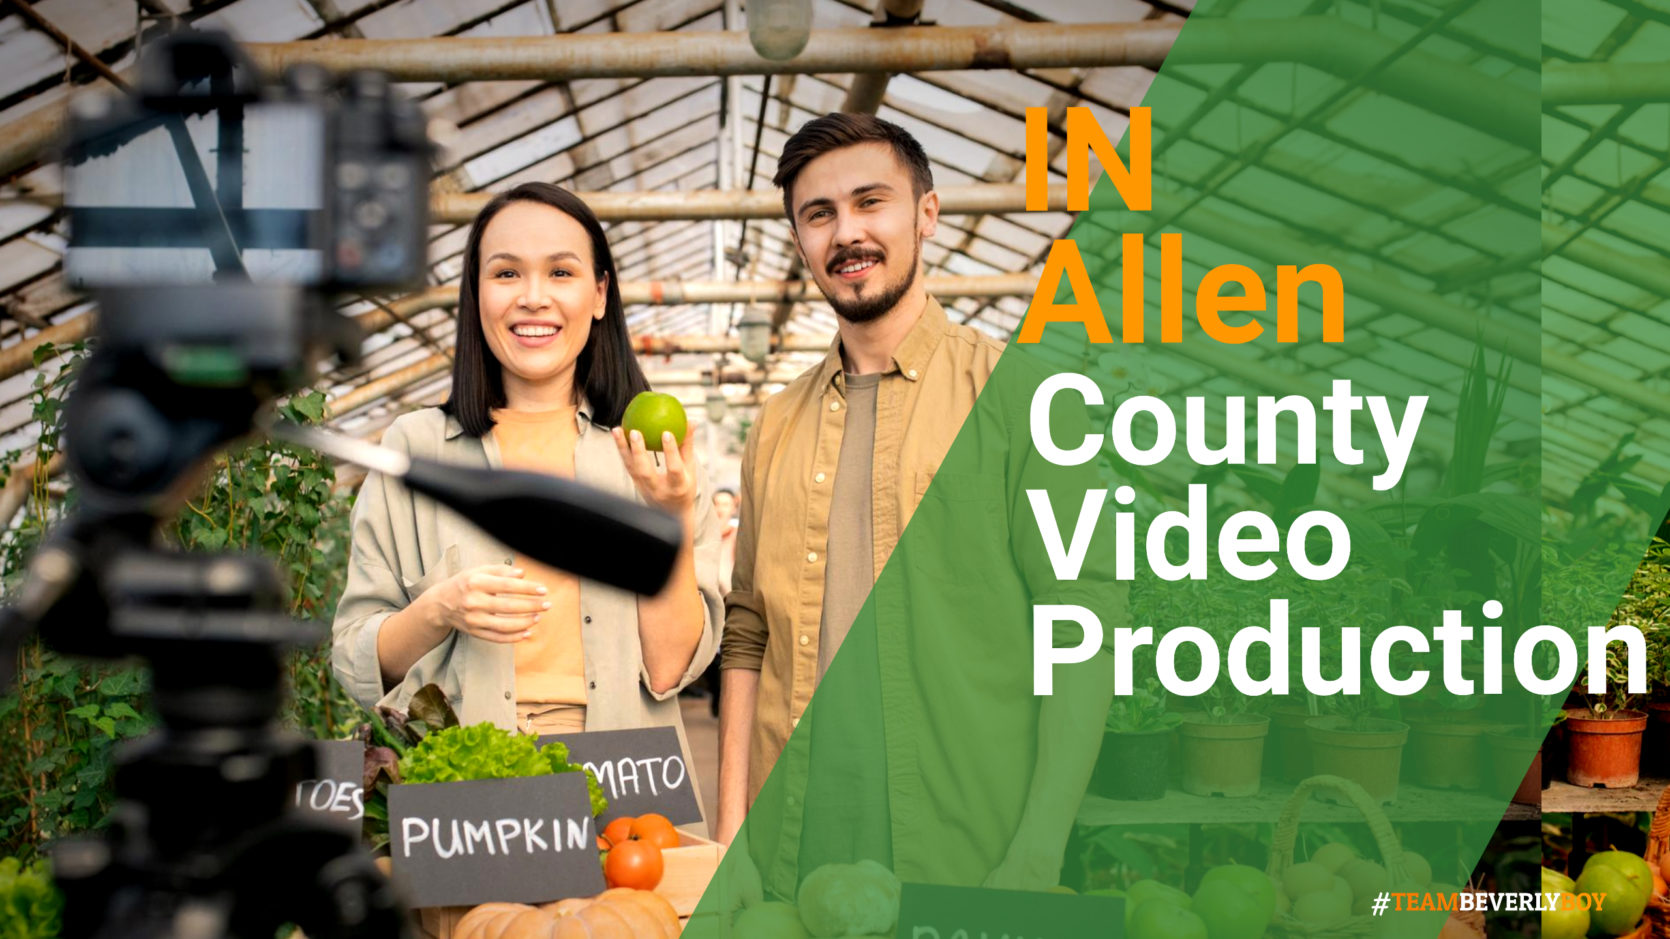 Allen County IN video production